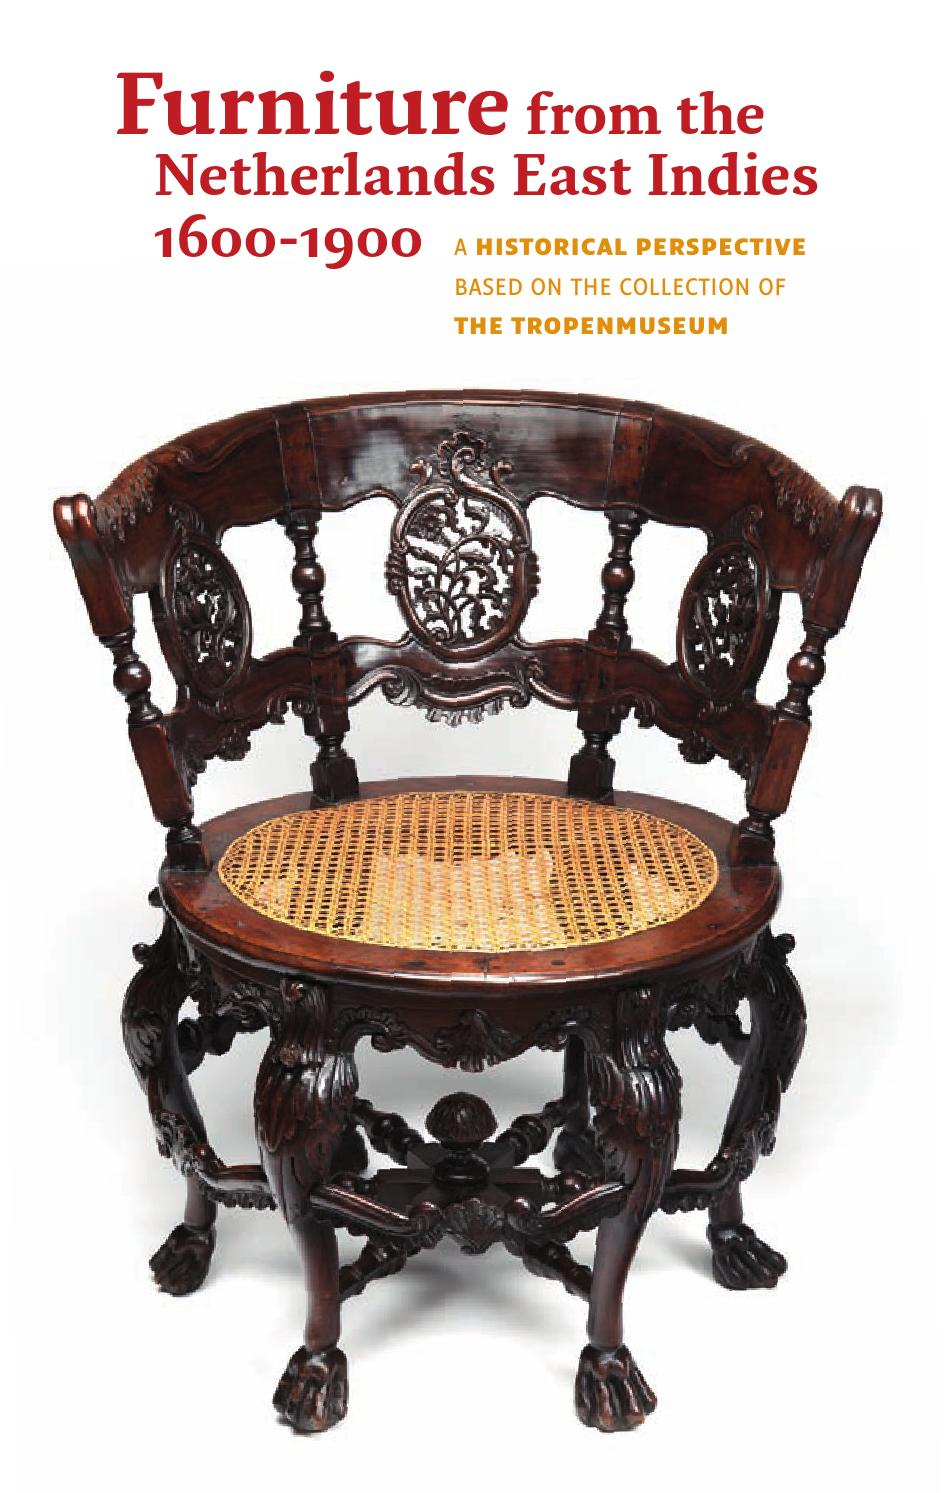 Sofa Repair Jakarta Furniture From The Netherlands East Indies By Lm Publishers Issuu